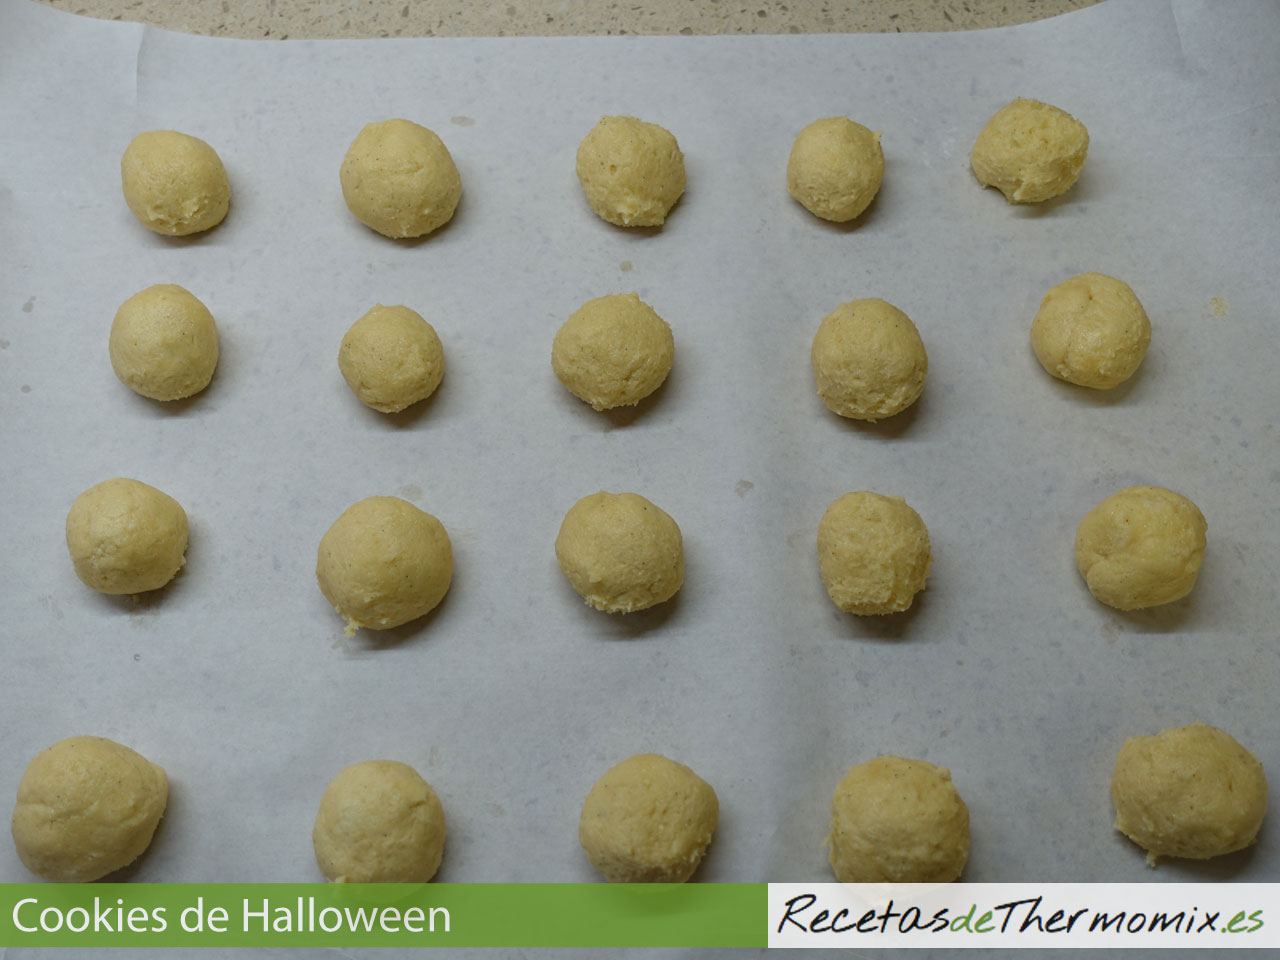 Masa de cookies sin chocolate con Thermomix